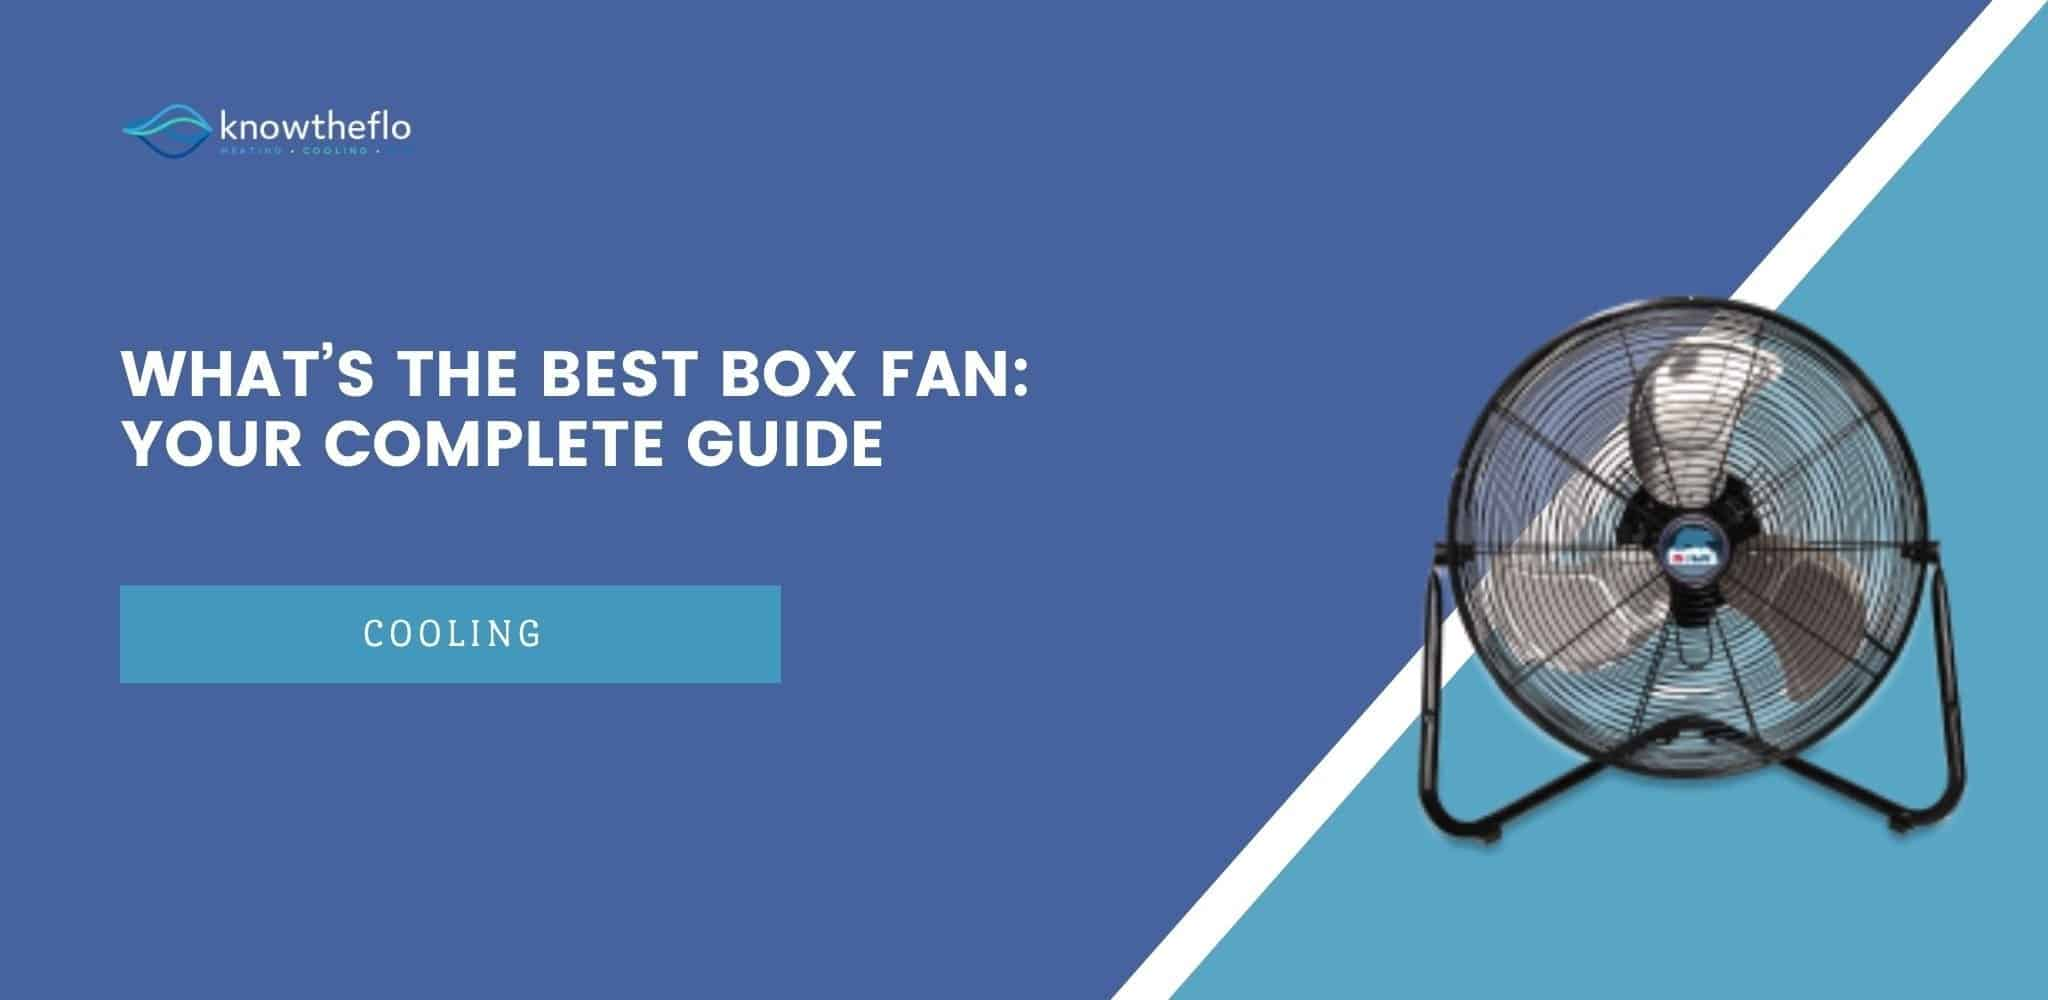 What's the Best Box Fan in 2020 - Your Complete guide